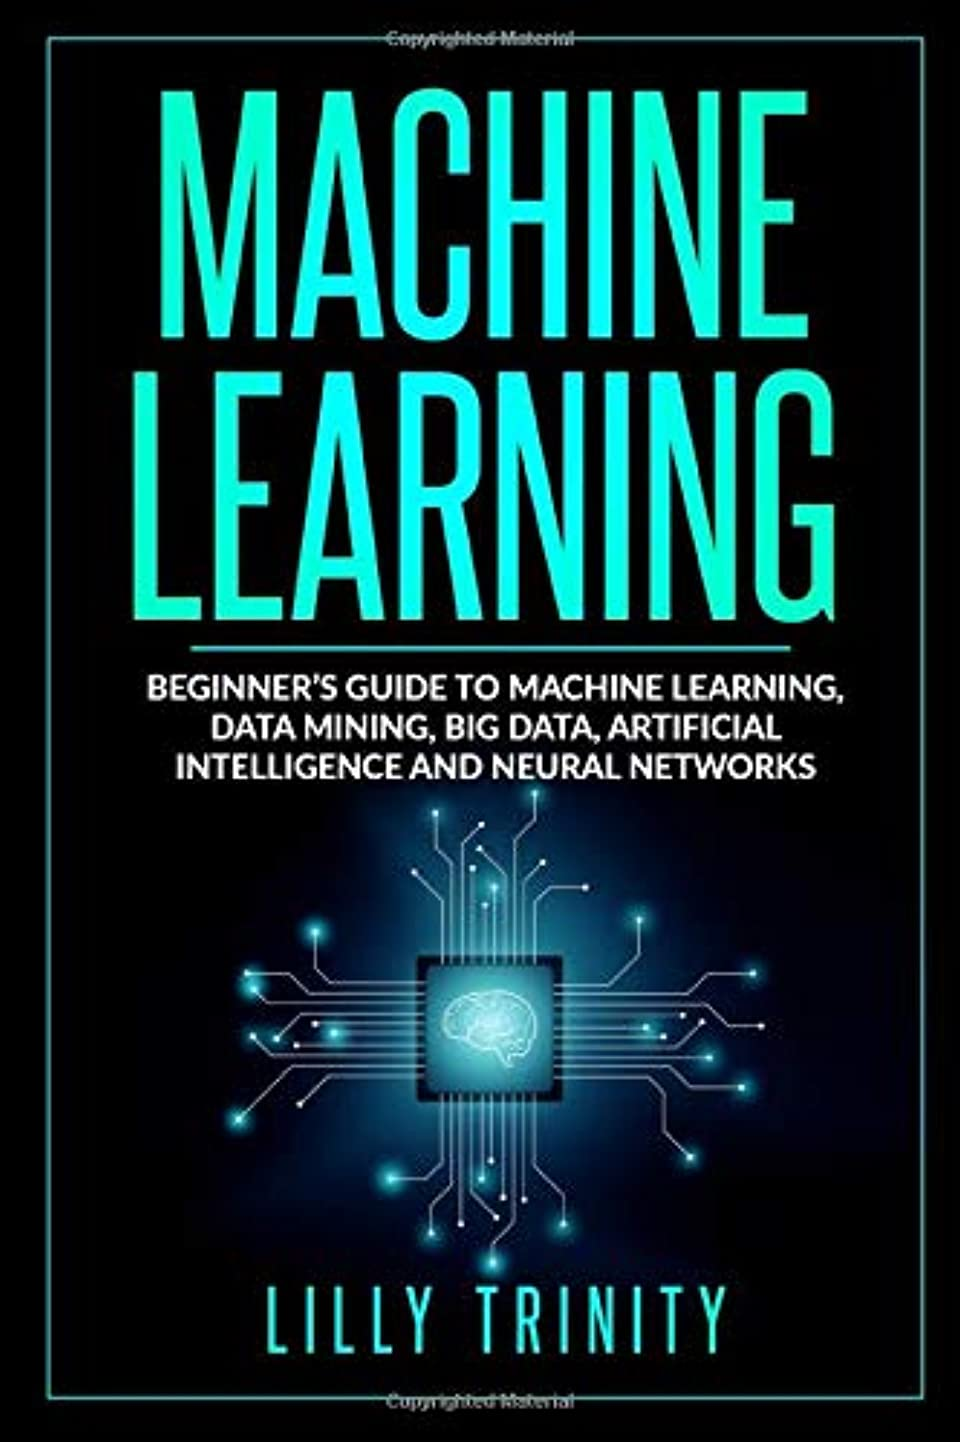 セットする航空便ロデオMachine Learning: Beginner's Guide to Machine Learning, Data Mining, Big Data, Artificial Intelligence and Neural Networks